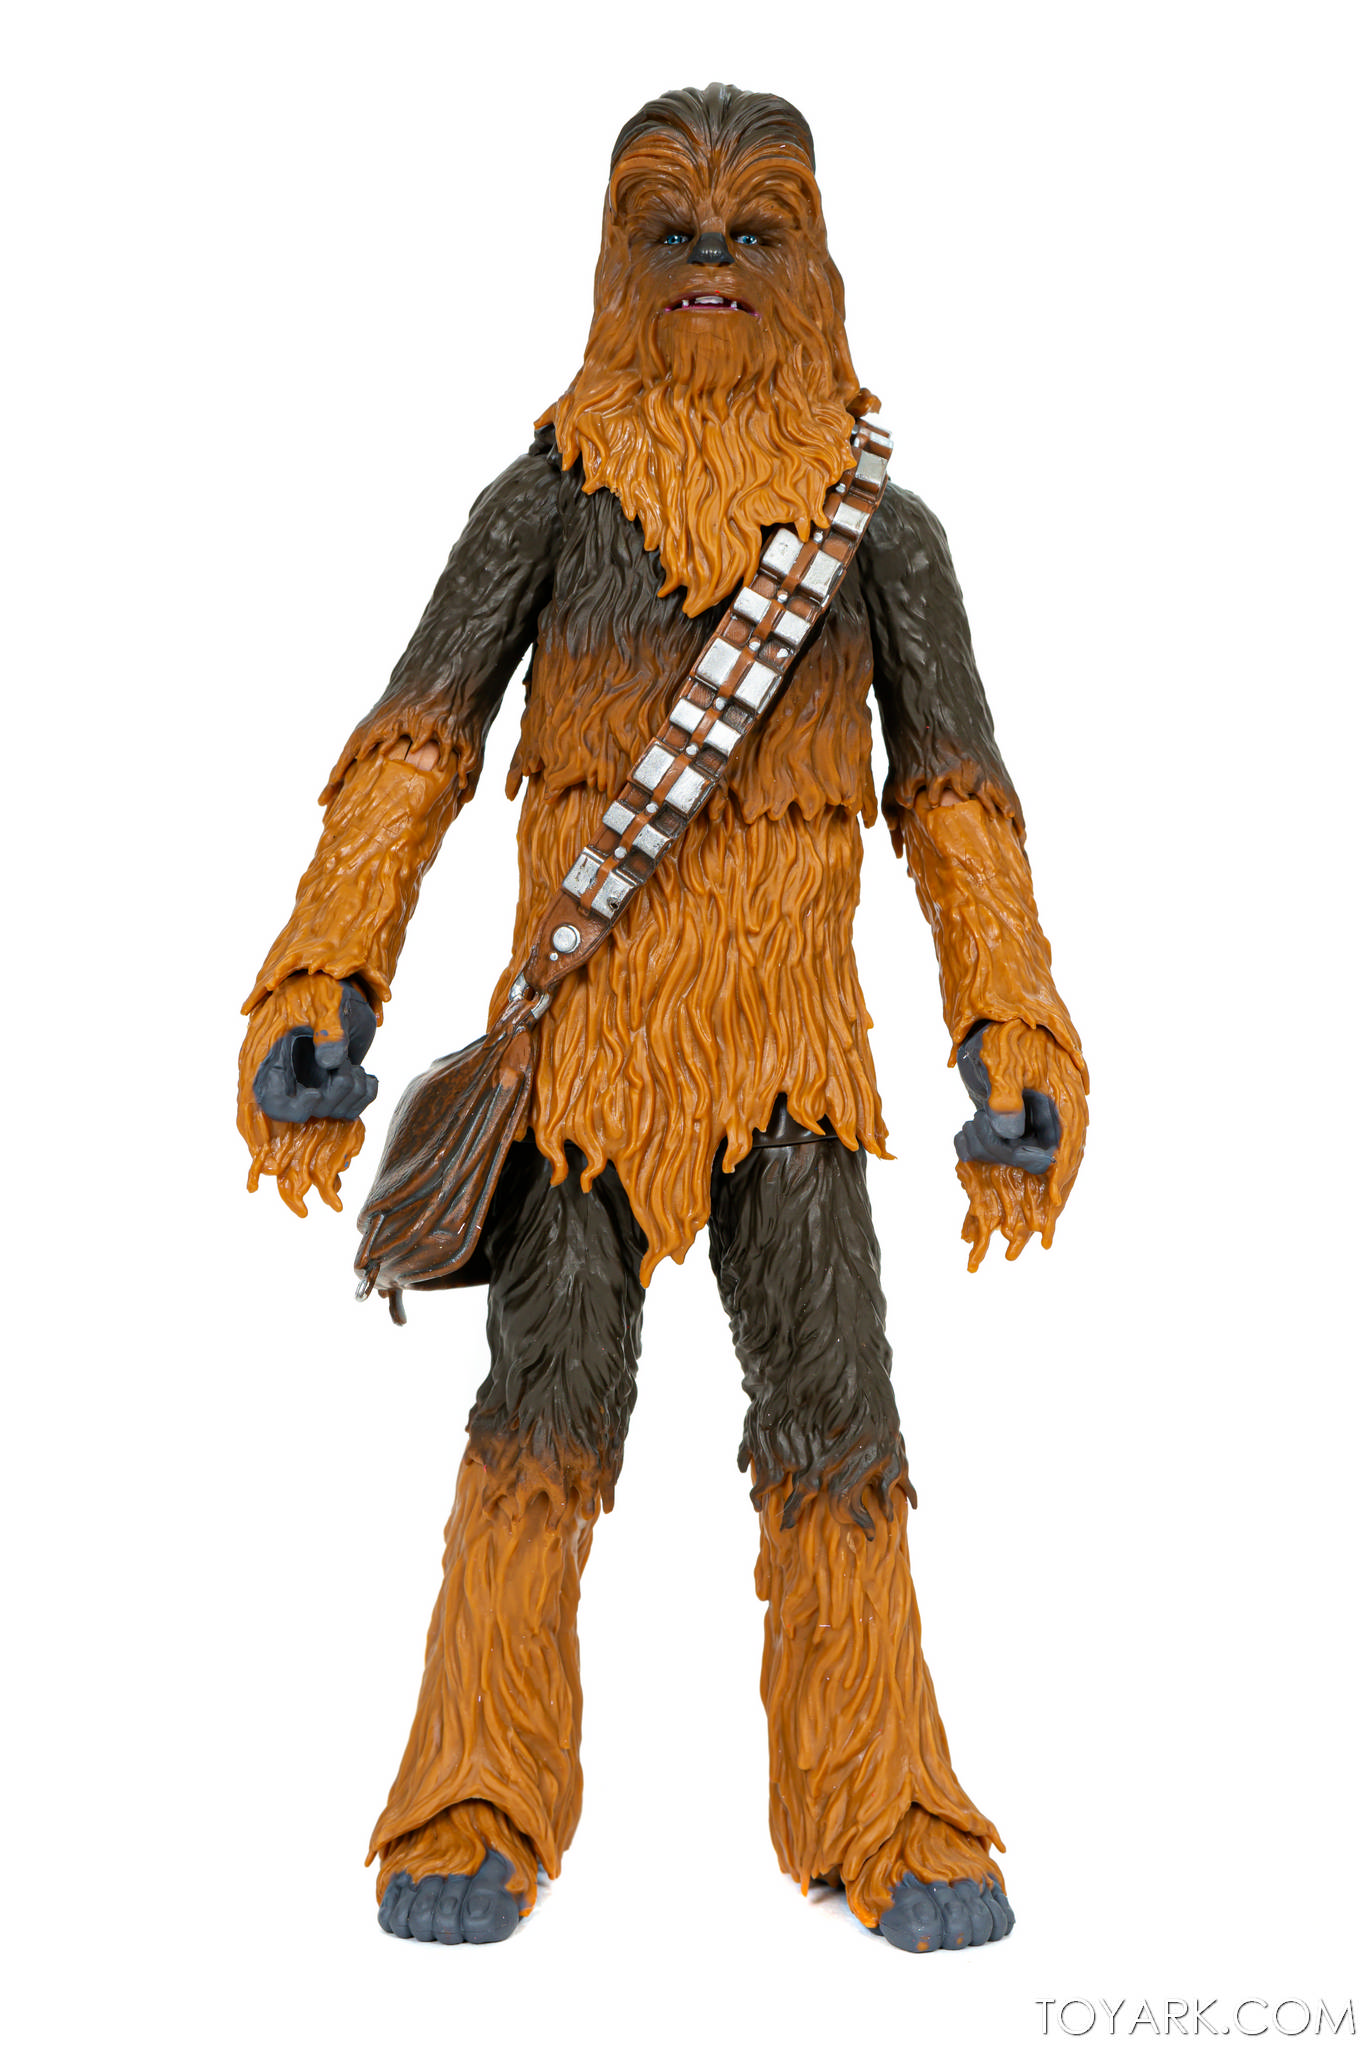 Star Wars The Black Series Chewbacca And C-3PO Toys 6/' Scale The Empire Strikes